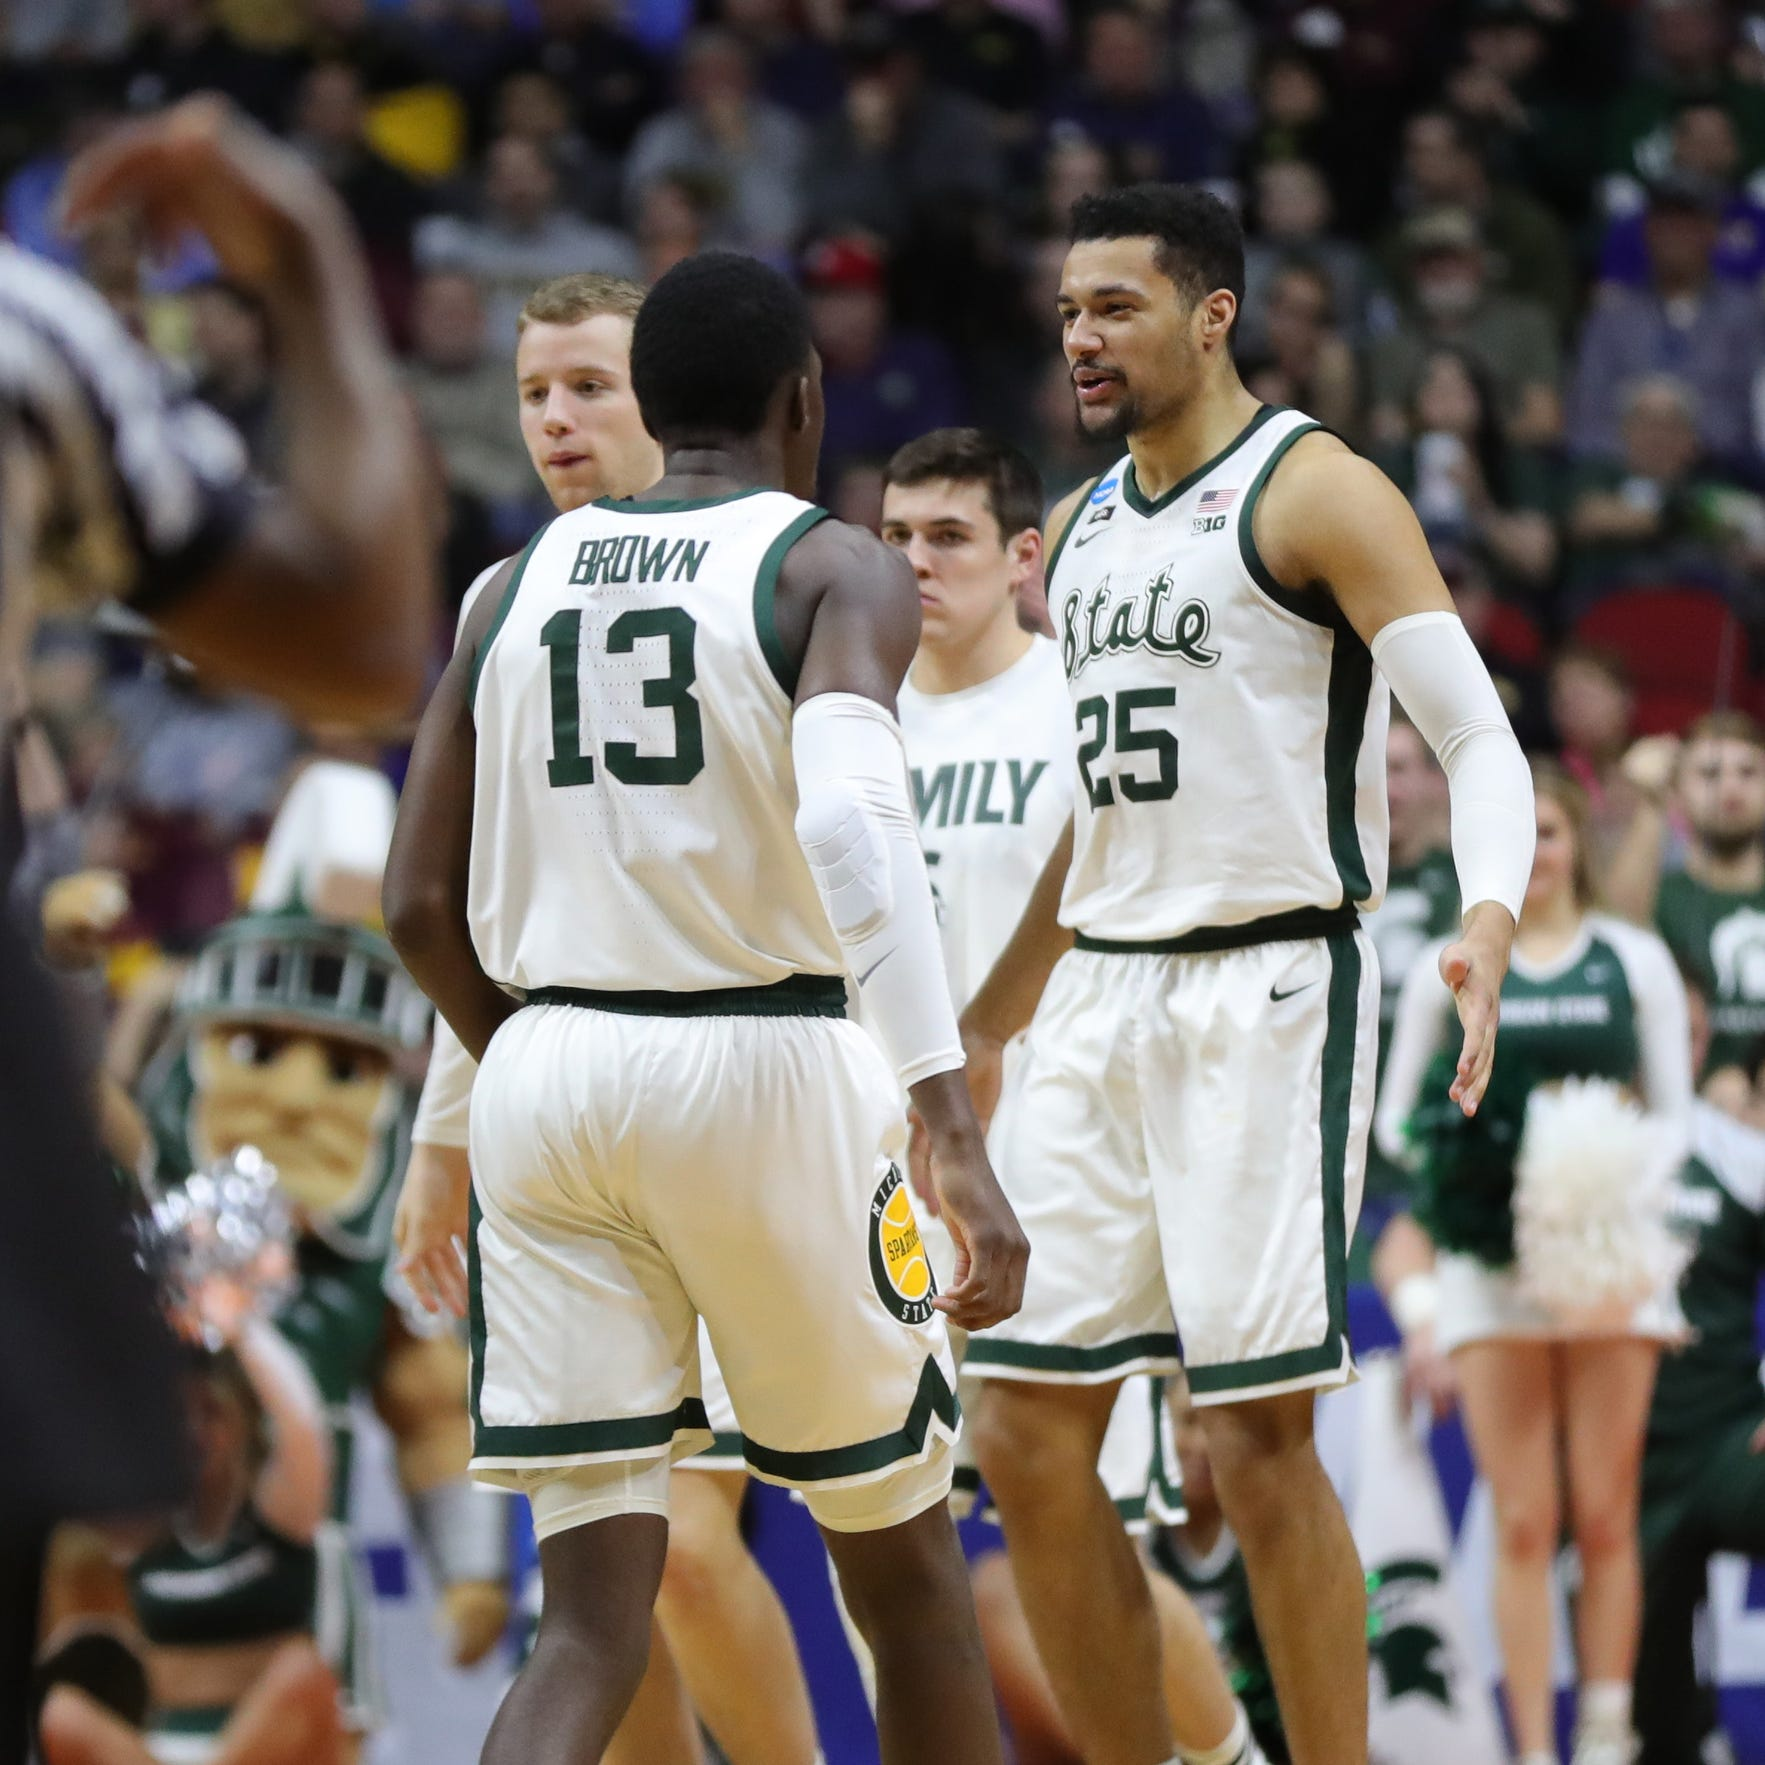 Michigan State basketball in Sweet 16 predictions: Final score vs. LSU